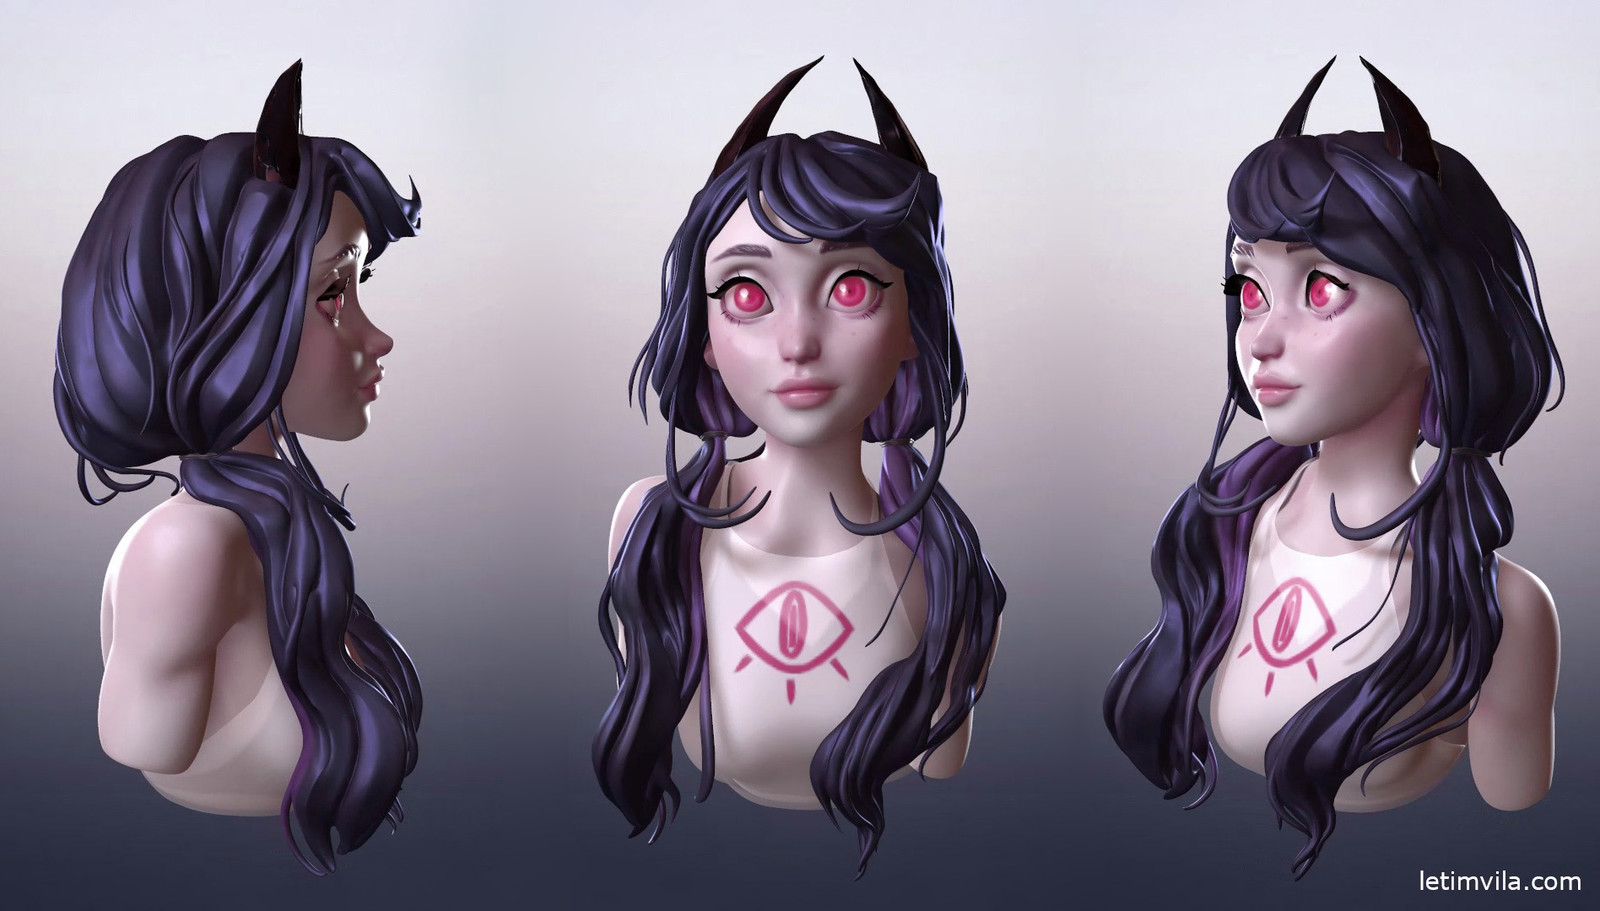 Demon girl, marmoset render views